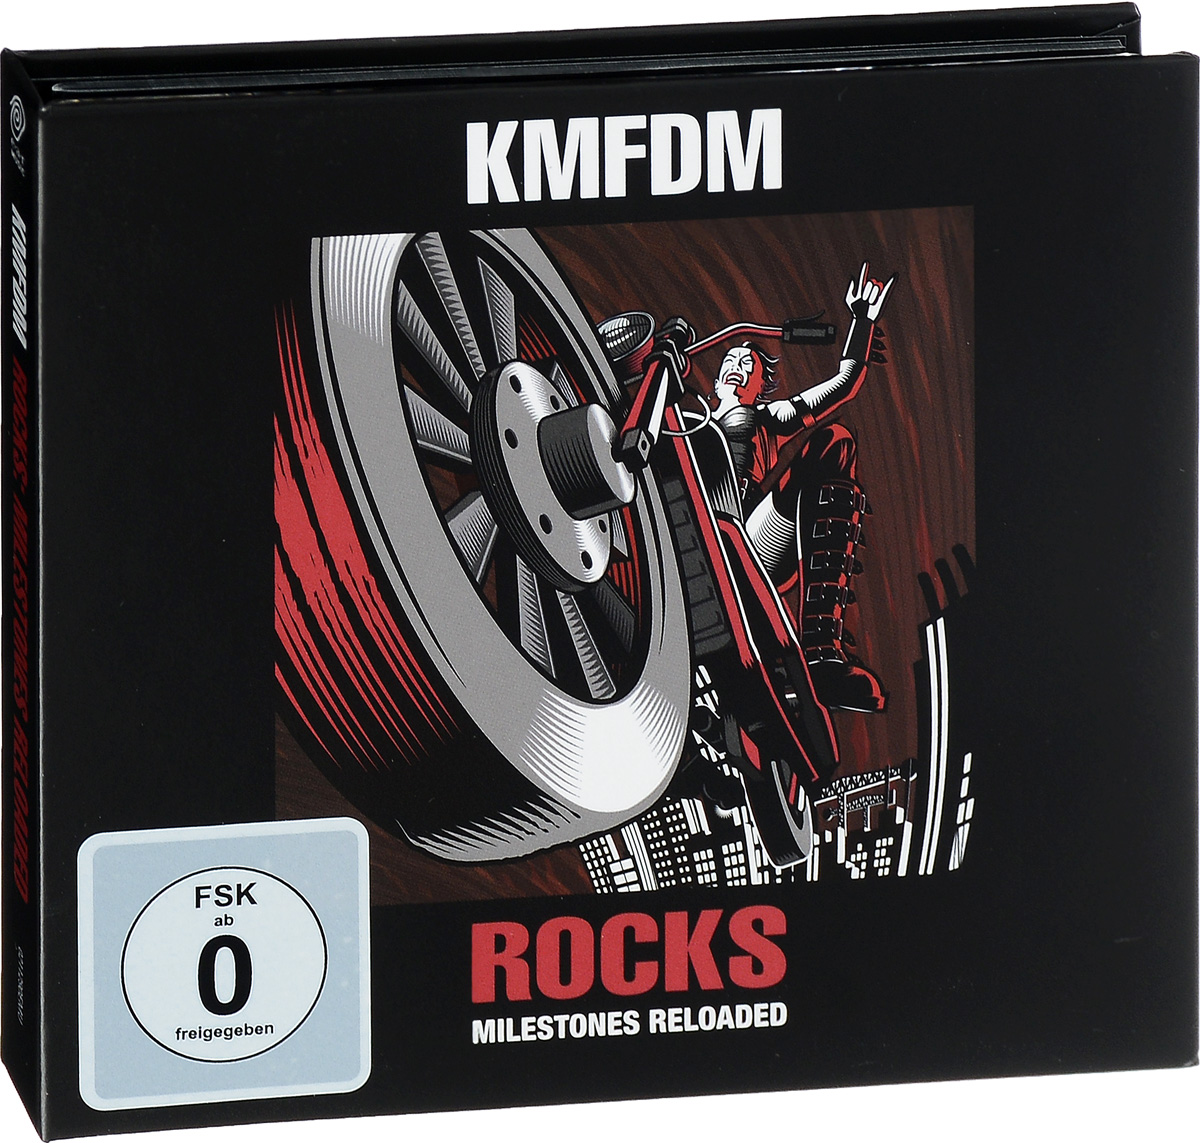 KMFDM KMFDM. Rocks. Milestones Reloaded (CD + DVD) carl perkins & friends blue suede shoes a rockabilly session 30th anniversary edition cd dvd